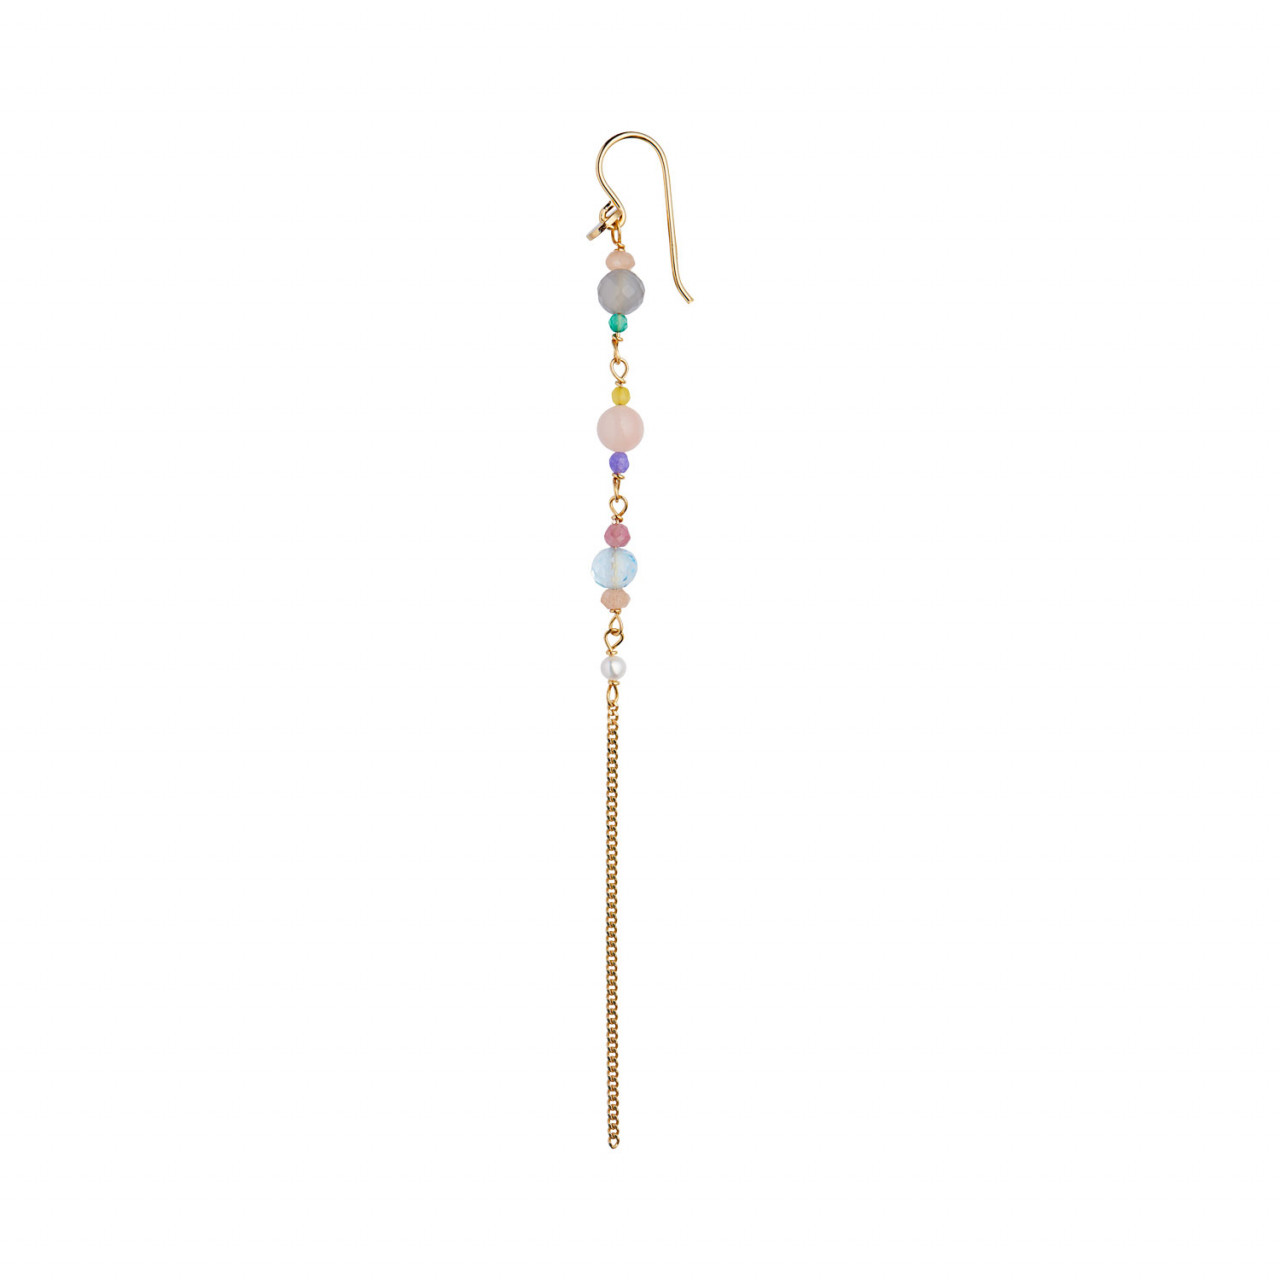 Long Earring with Stones and Chain - Candy Floss Mix